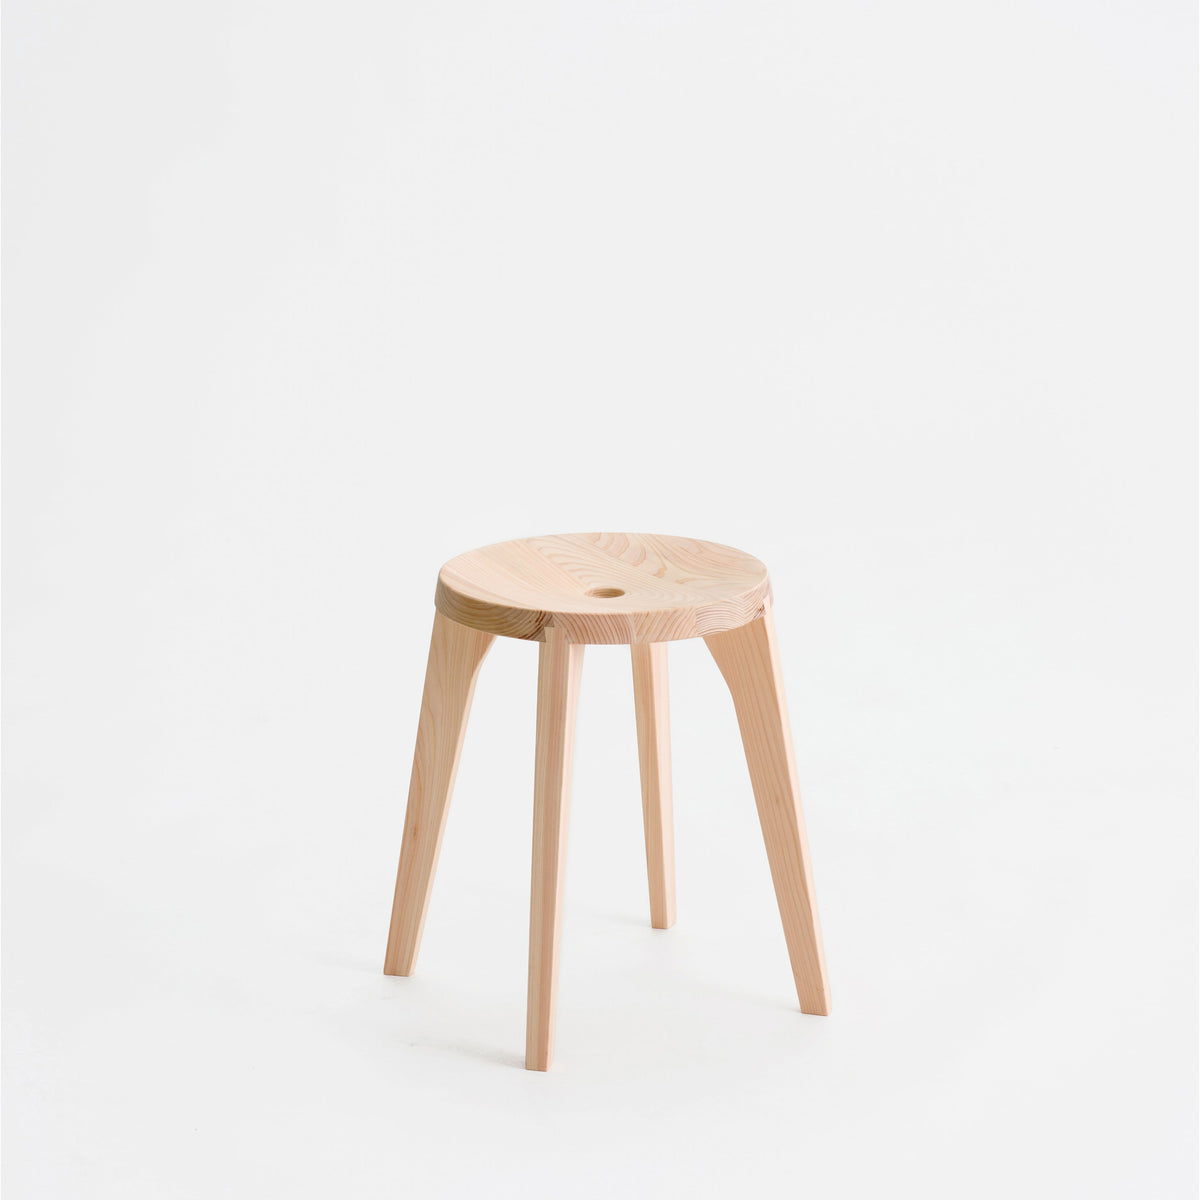 Dovetail Stool 4 Legs